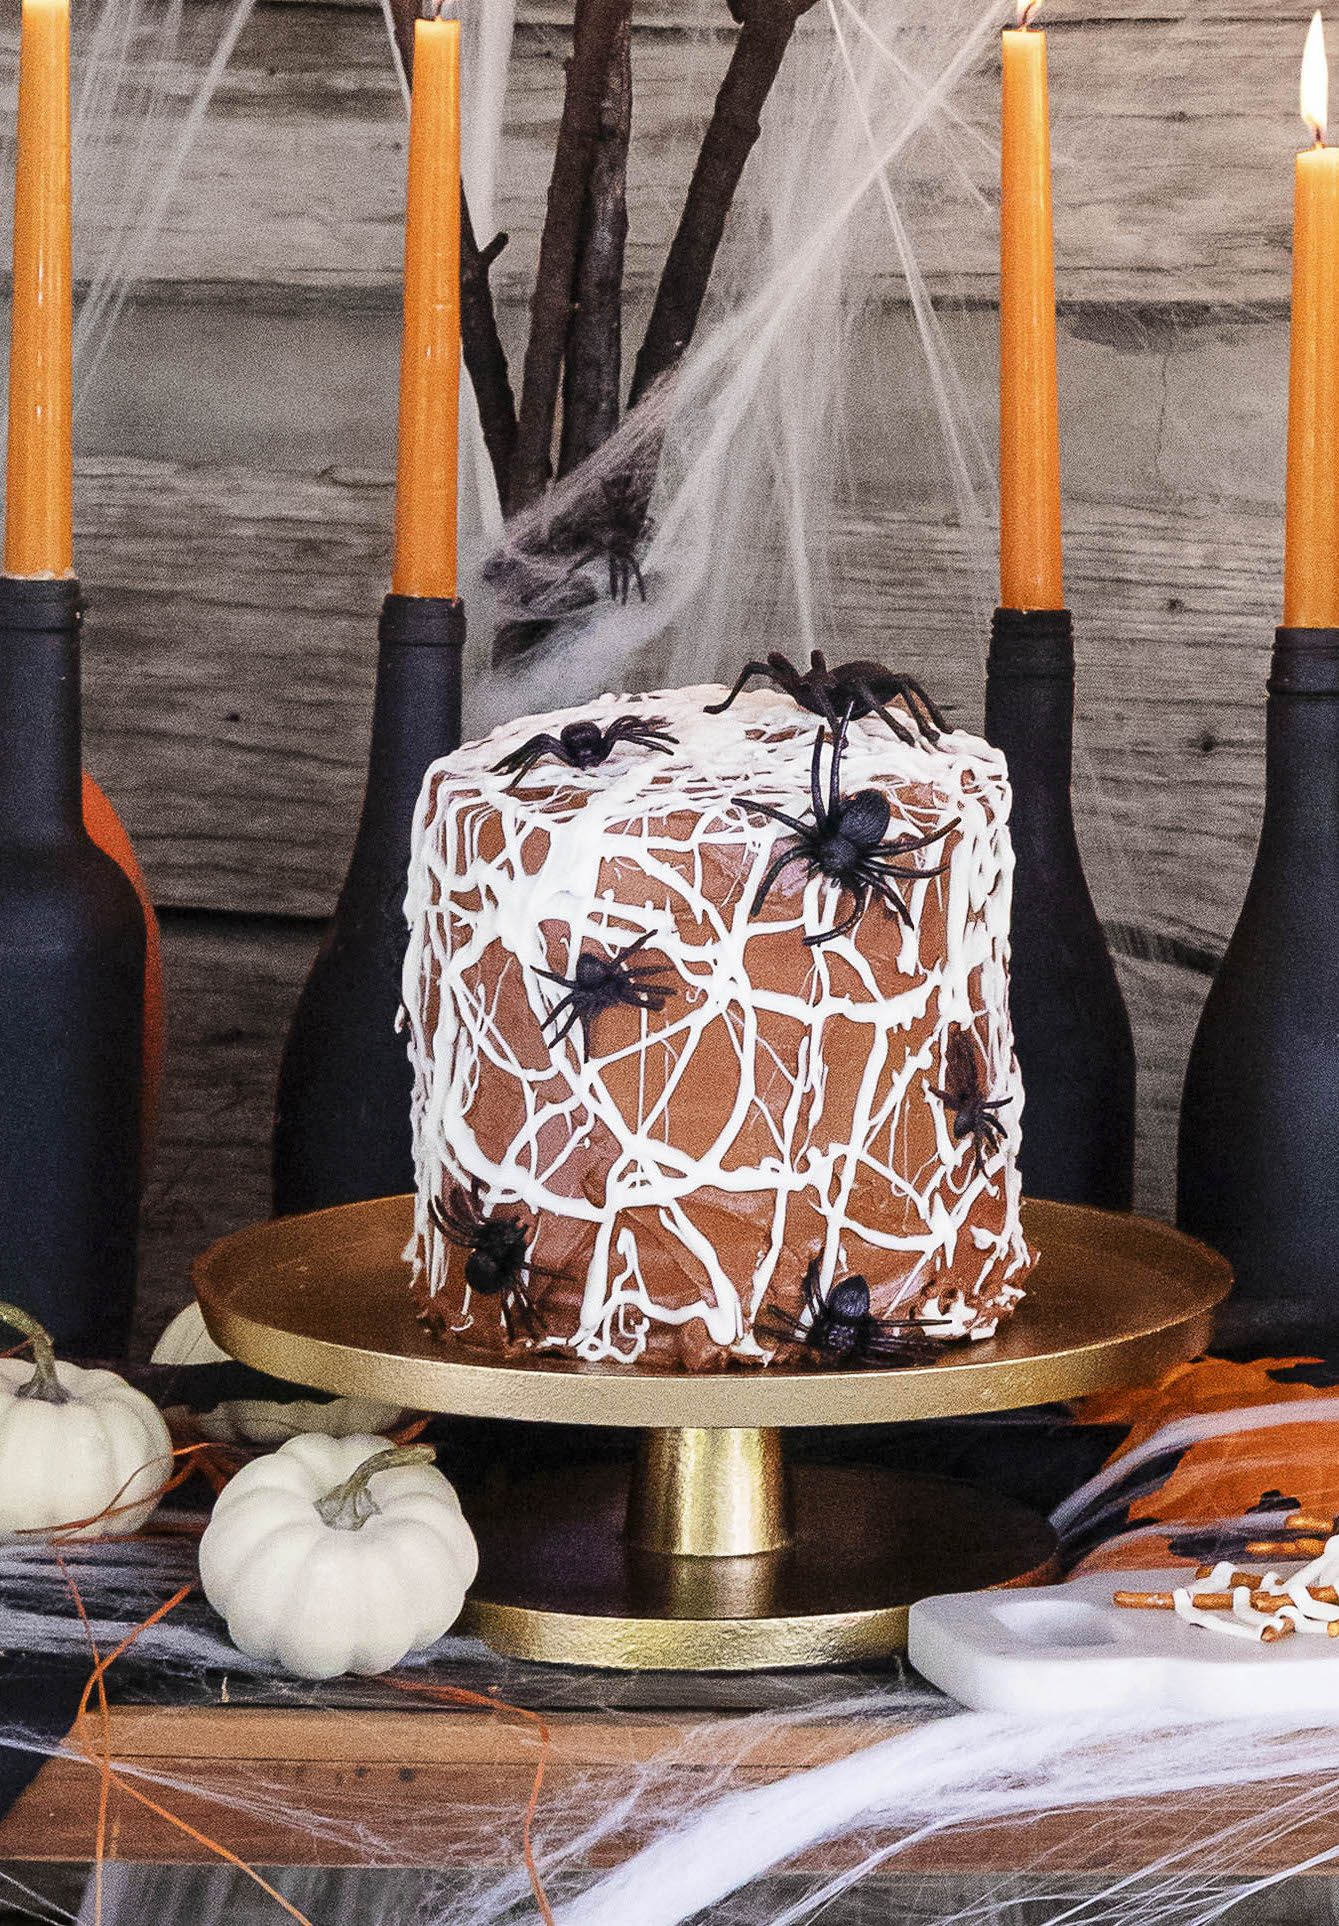 chocolate cake with white chocolate spider web frosting and fake spiders